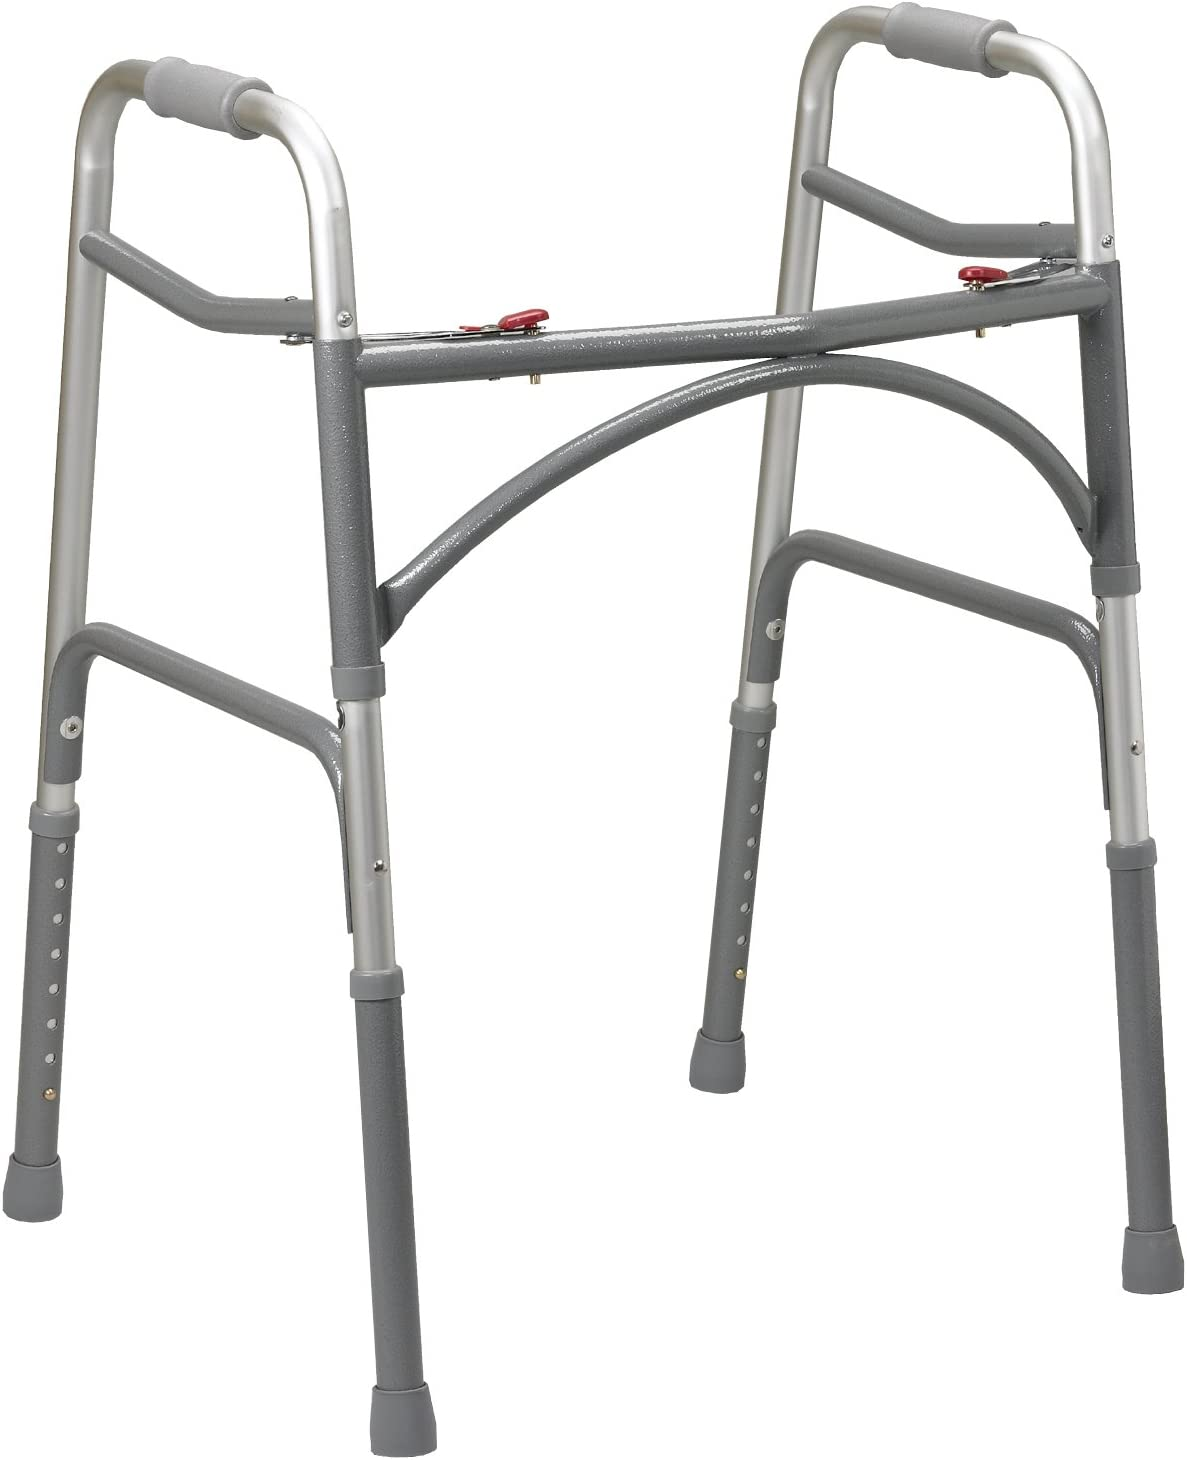 Drive Medical Heavy Duty Bariatric Walker, Gray, Adult: Health & Personal Care